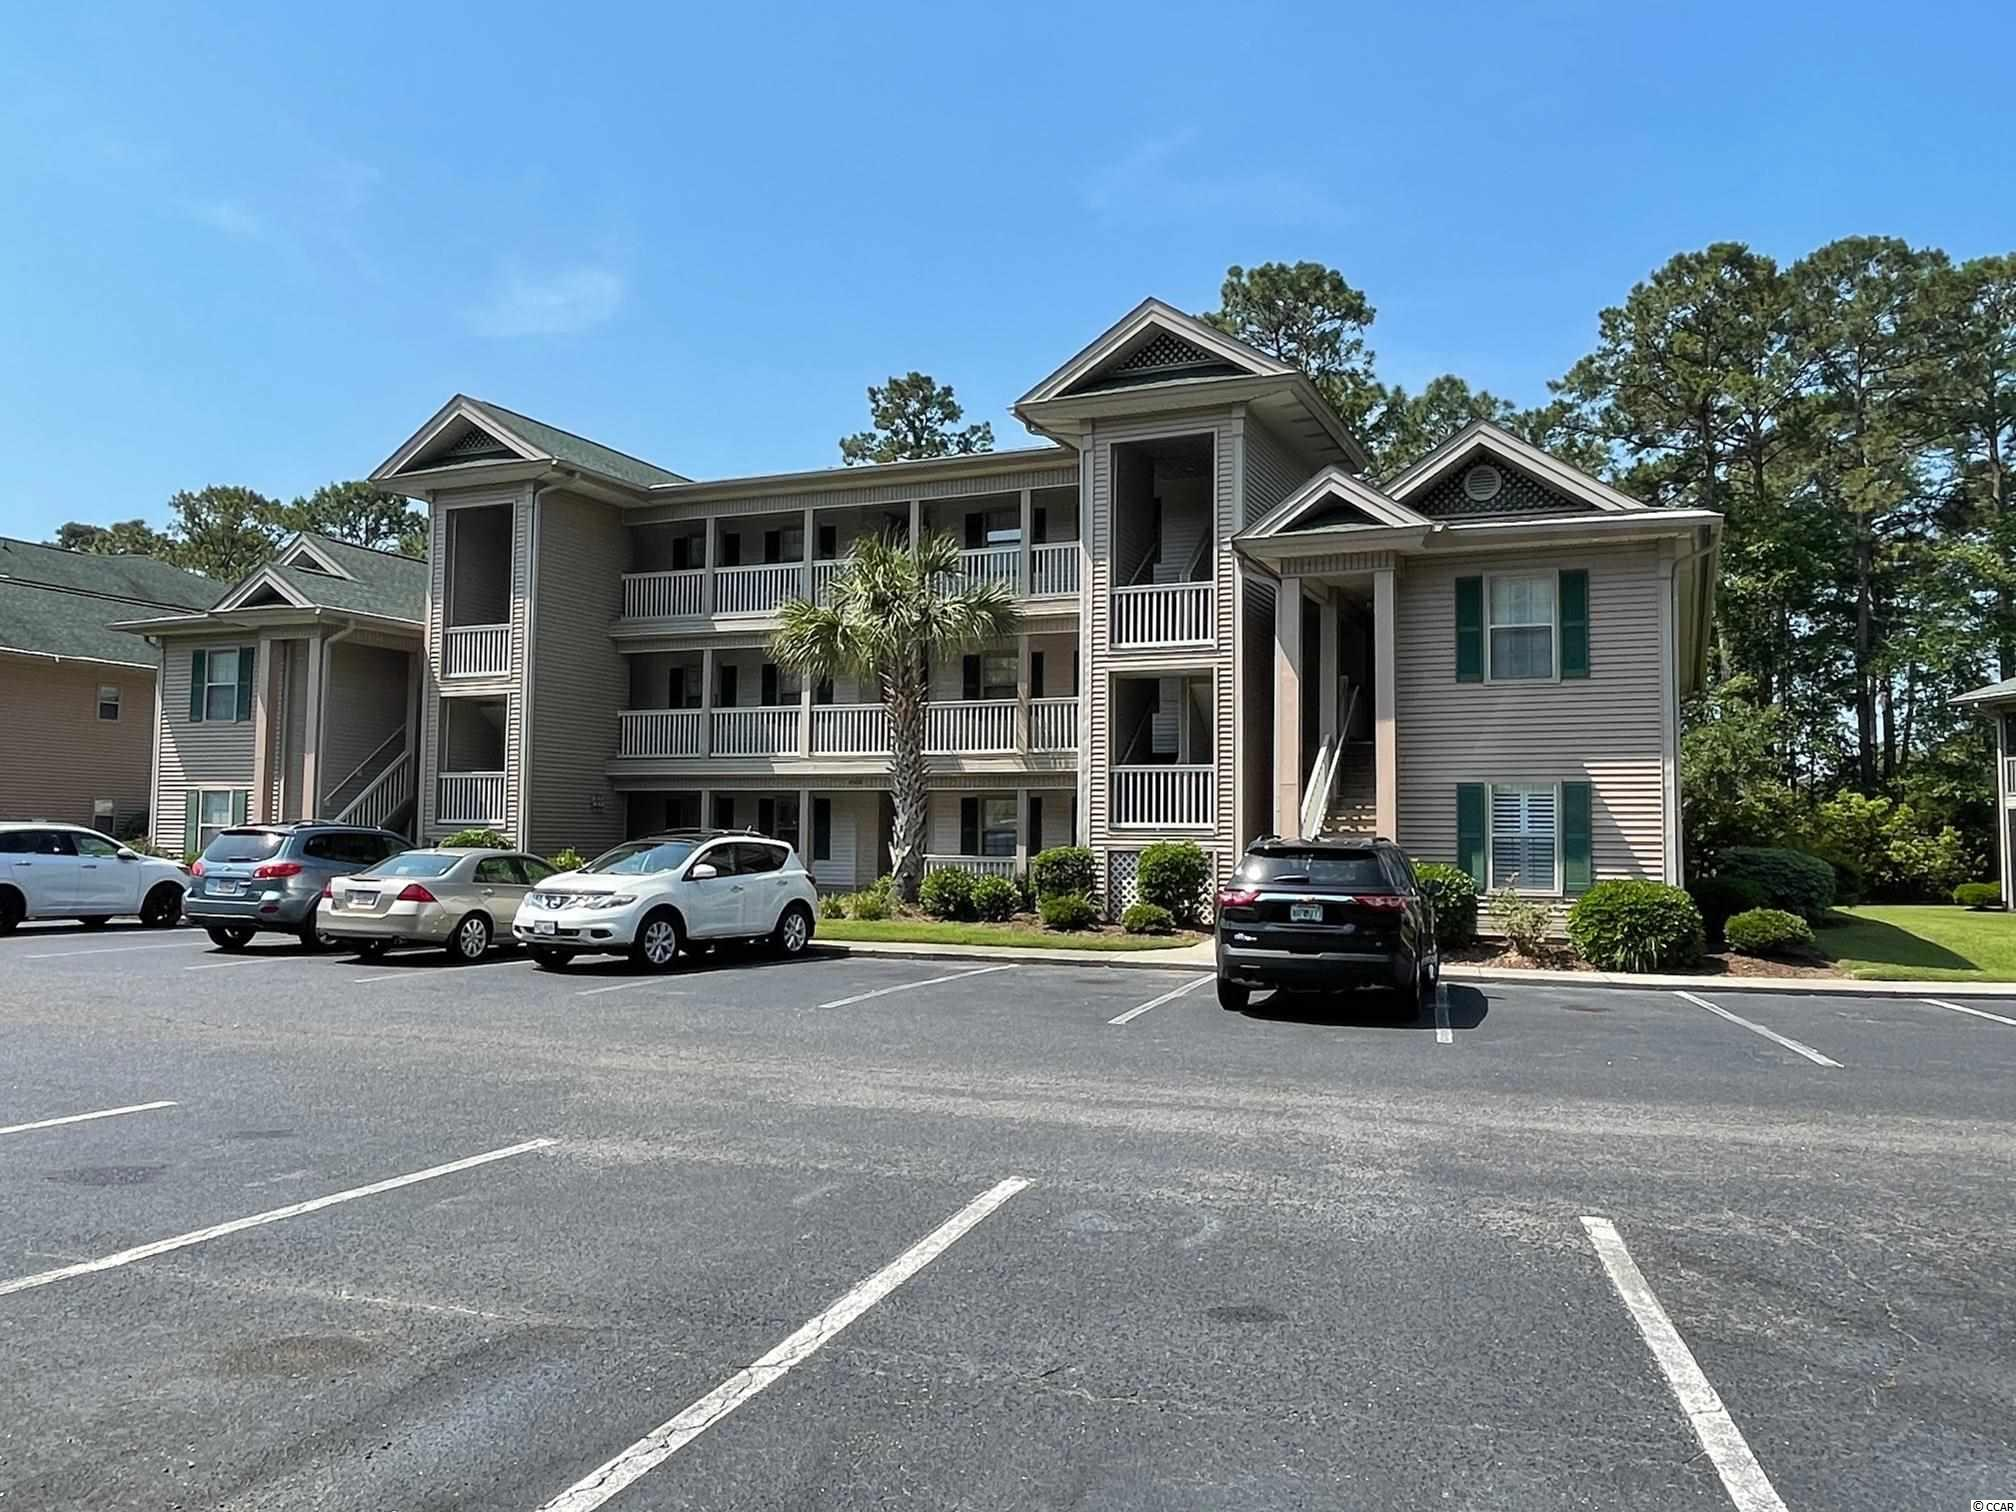 BACK ON THE MARKET!!!  No fault of seller.  This True Blue Condo is a real gem of a find in Pawleys Island. This gorgeous well maintained and fully furnished 3 Bedroom 2 Bath condo with Golf Course Views is sure to not last long.  The condo boasts a large master bedroom with a king sized bed as well as a quest room that also has a king size bed.  The second guest room has two extra long twin beds allowing for fun times for all. The utilization of space in this condo gives you the ability to have guests without being cramped, and it is also designed as a split bedroom plan.  The fully equipped kitchen has new stainless steel co-ordinate Samsung appliances, and is ready to use immediately.  Clean up is a snap as this condo has a full sized washer and dryer located in the large second bathroom, tucked away in a laundry closet. The flooring throughout the main living space is luxury vinyl interlocking floor, with the kitchen foyer and hall covered in ceramic tile.  The bedroom areas are carpeted for your comfort.  If you're looking for amenities, look no further.  This community has multiple pool outdoor living areas and in fact True Blue has 5 pools and 4 hot tubs.  Great venues for walking and enjoying the beautiful surroundings. If tennis sport look no further, as amenities include tennis courts.  This condo is located across from the pool and hot tub that remains open 12 months of the year, for your outdoor enjoyment.  Location, location, location....  The beach is a short 5 minute drive. Golf amenities in your community, with a golf academy located on the property, as well as a clubhouse with dining.  Outside this community Georgetown is only a short drive south. Huntington State Park is only 5 miles north.  Brookgreen Green Gardens and it exhibits are just to the north on HWY 17.   Your general location is close enough for quick visits to Charleston and all the shopping of the South Strand area to the north.